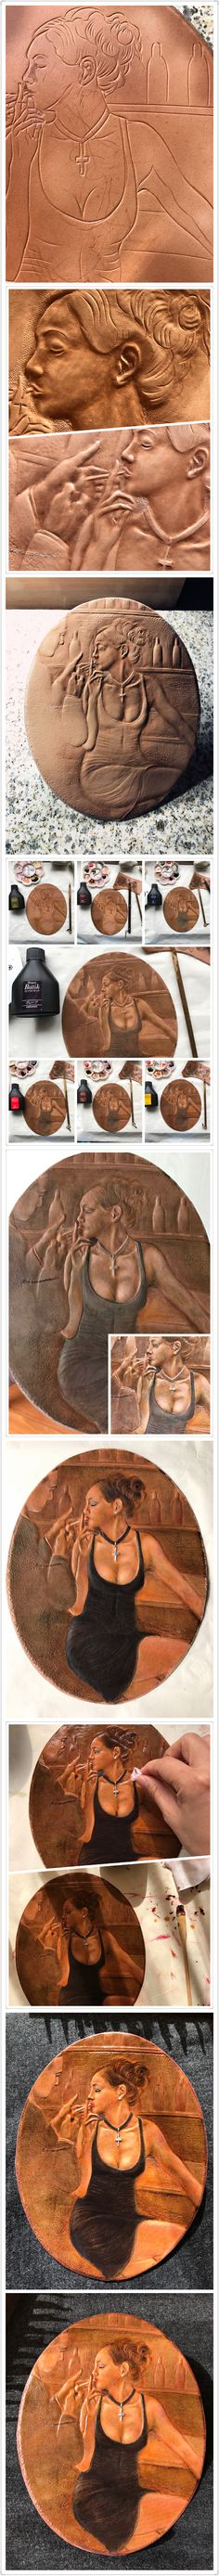 Smoking girl leather carving procedure. The pattern is transferred from a painting belongs to the artist Fabian Perez.#leather#carving#leather carving